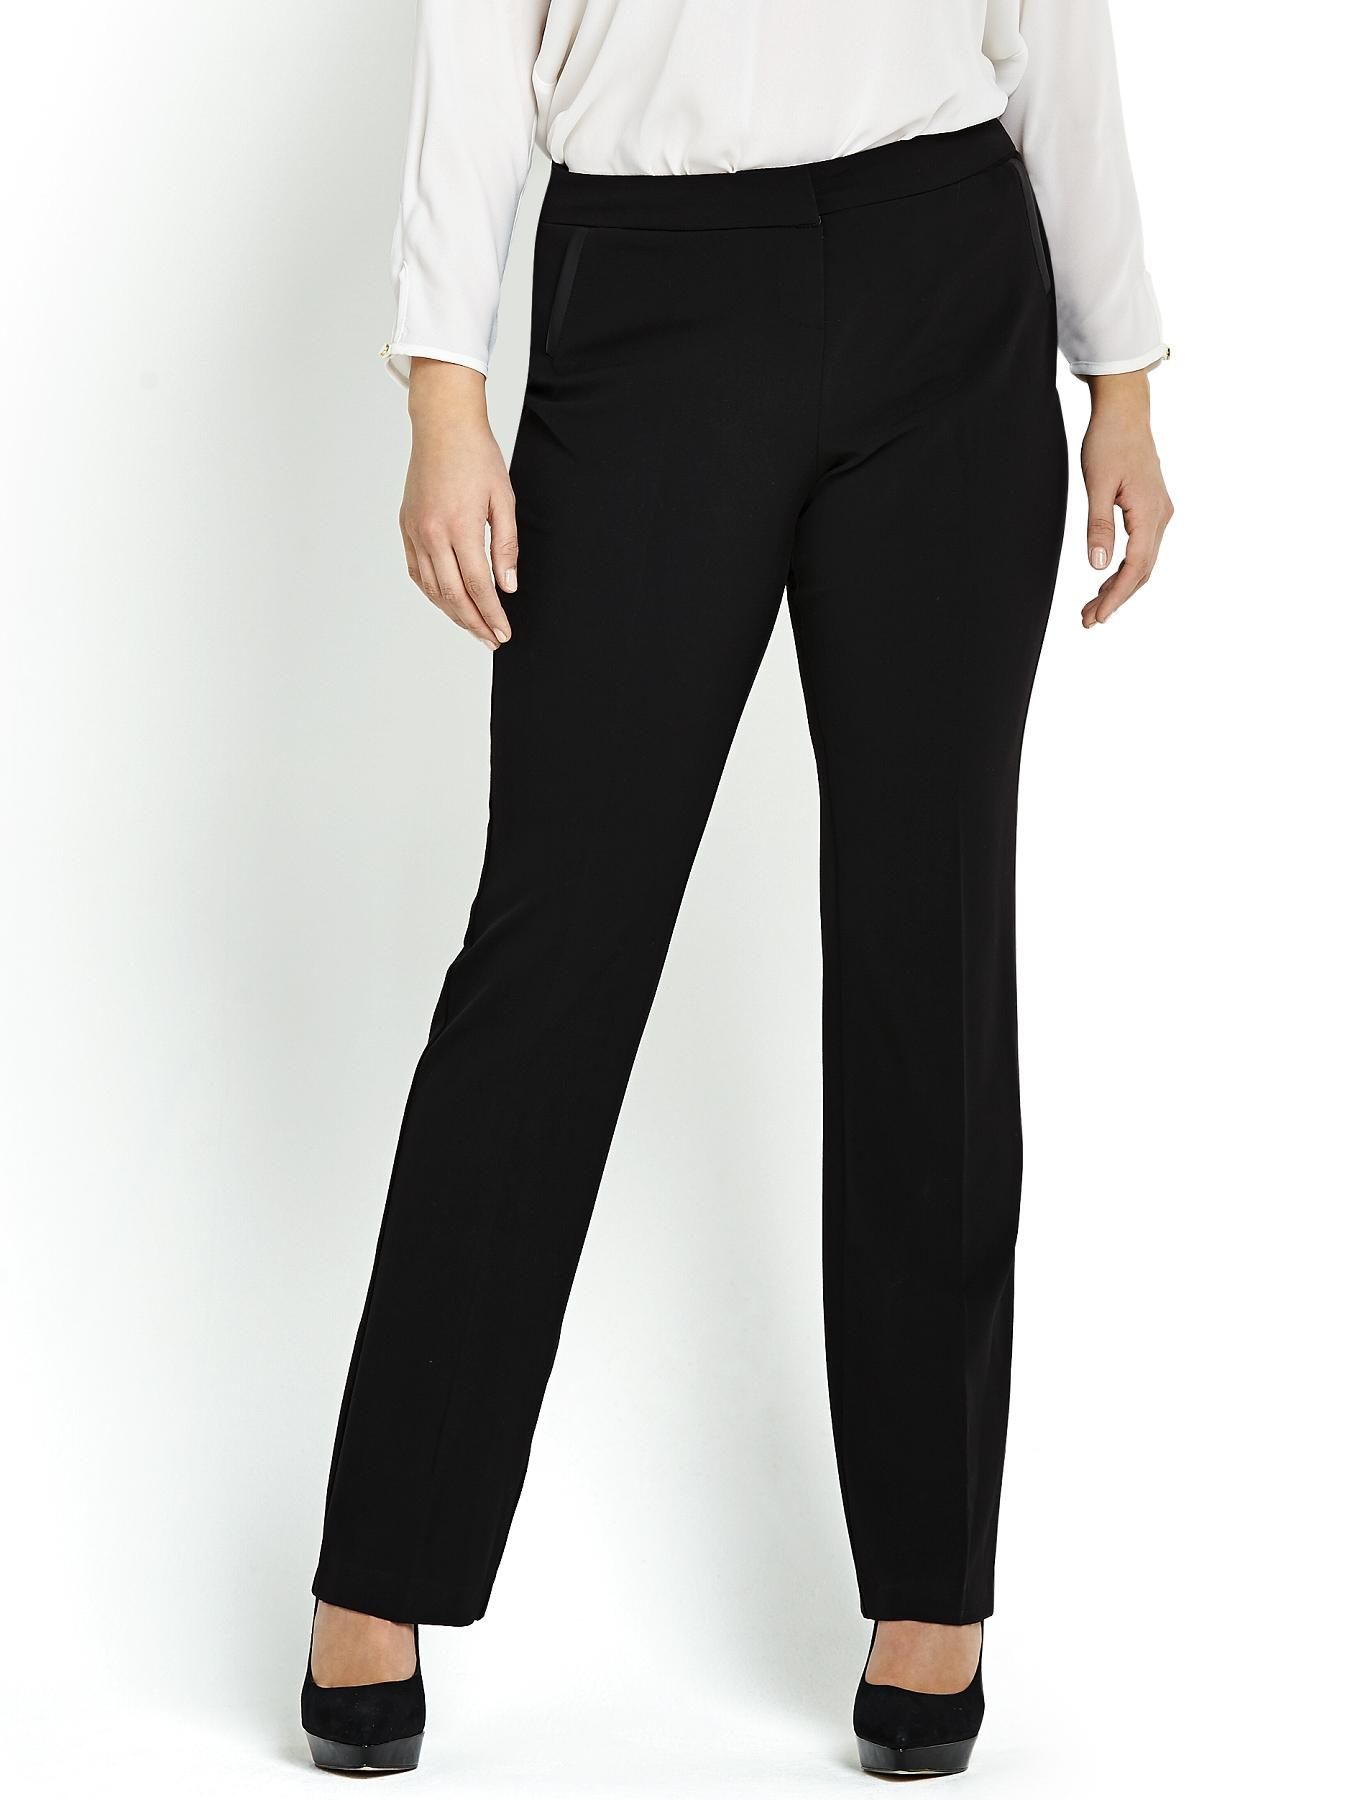 Straight Leg PU Pocket Trim Trousers, Black